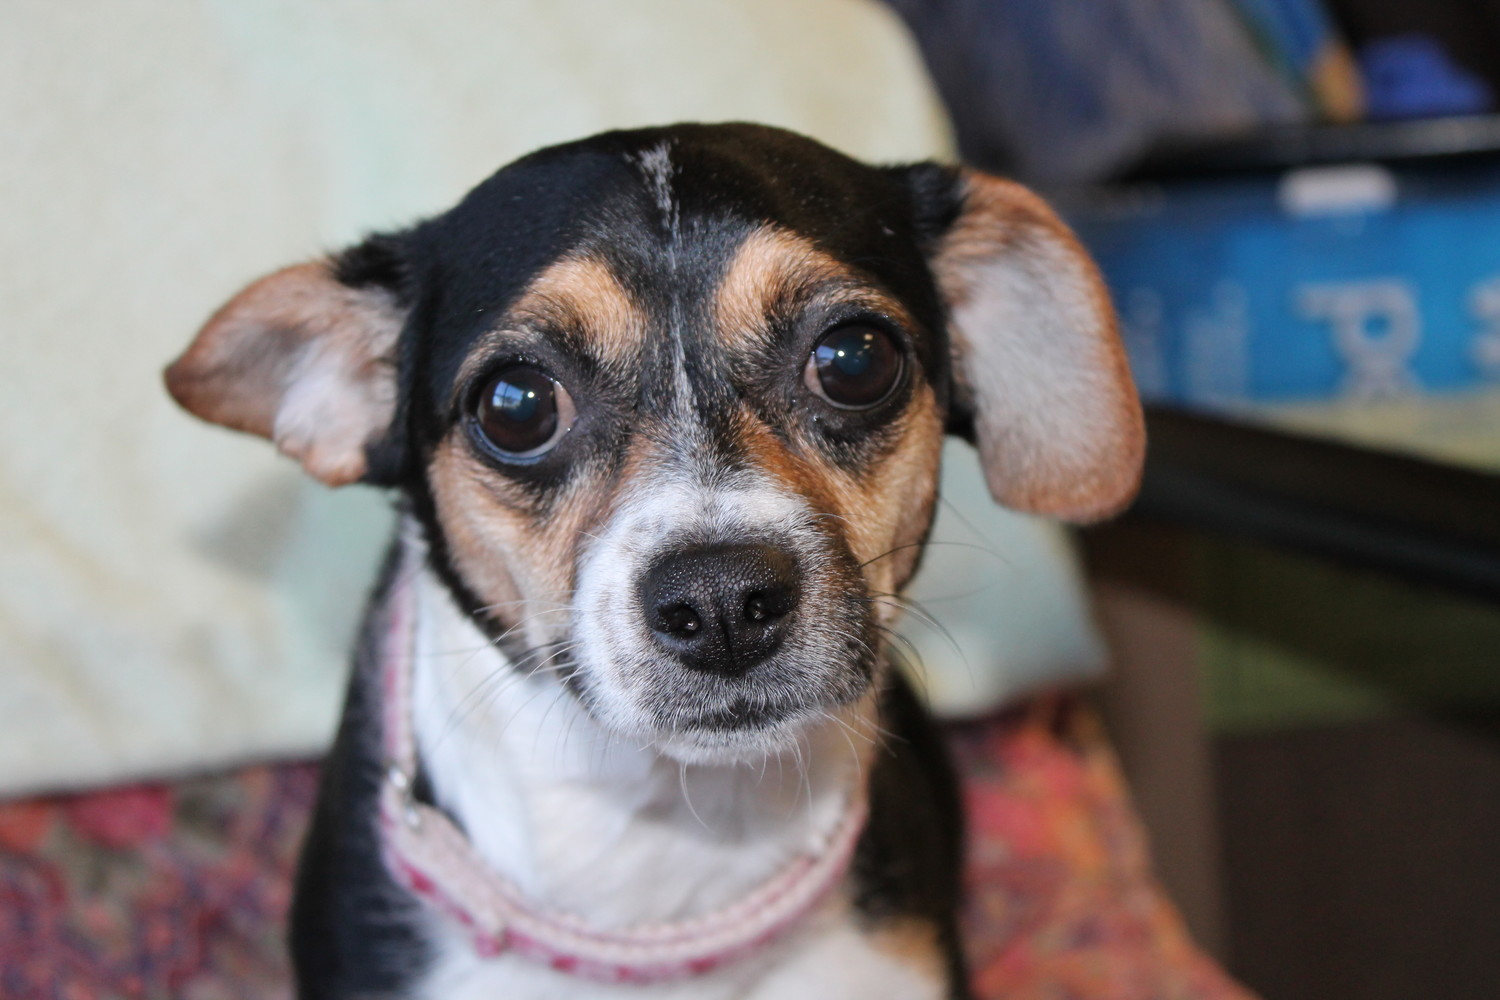 Ripley is wondering if you perhaps have room in your home for her. She's really little and wouldn't be a bother.